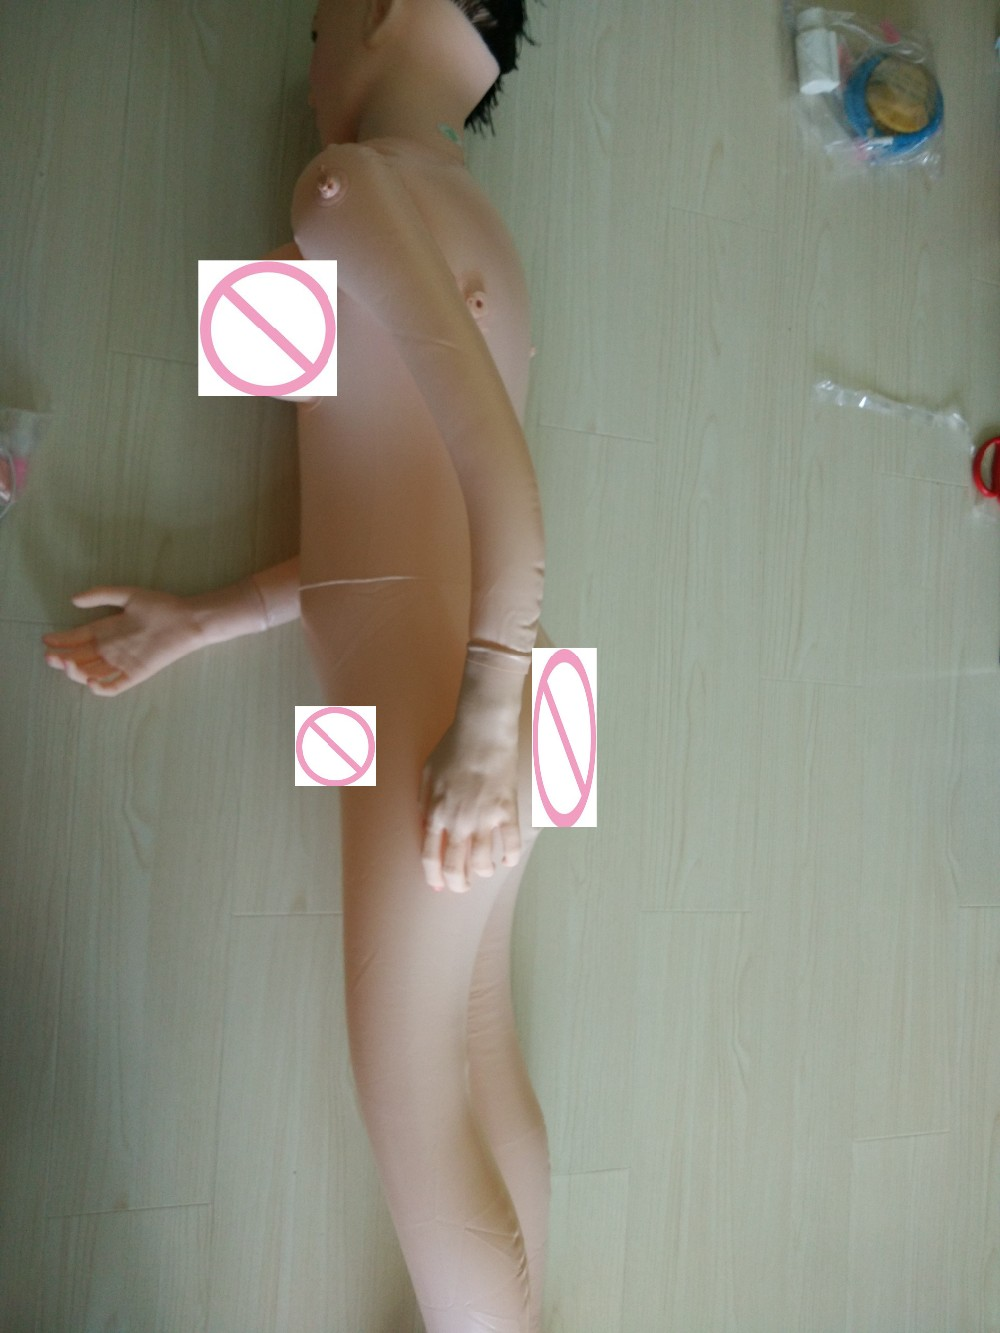 Oral/Vaginal/Anal Sex Dolls Thicker Factory Outlet Inflatable doll Chest can be filled with water Male masturbation Sex Products 18